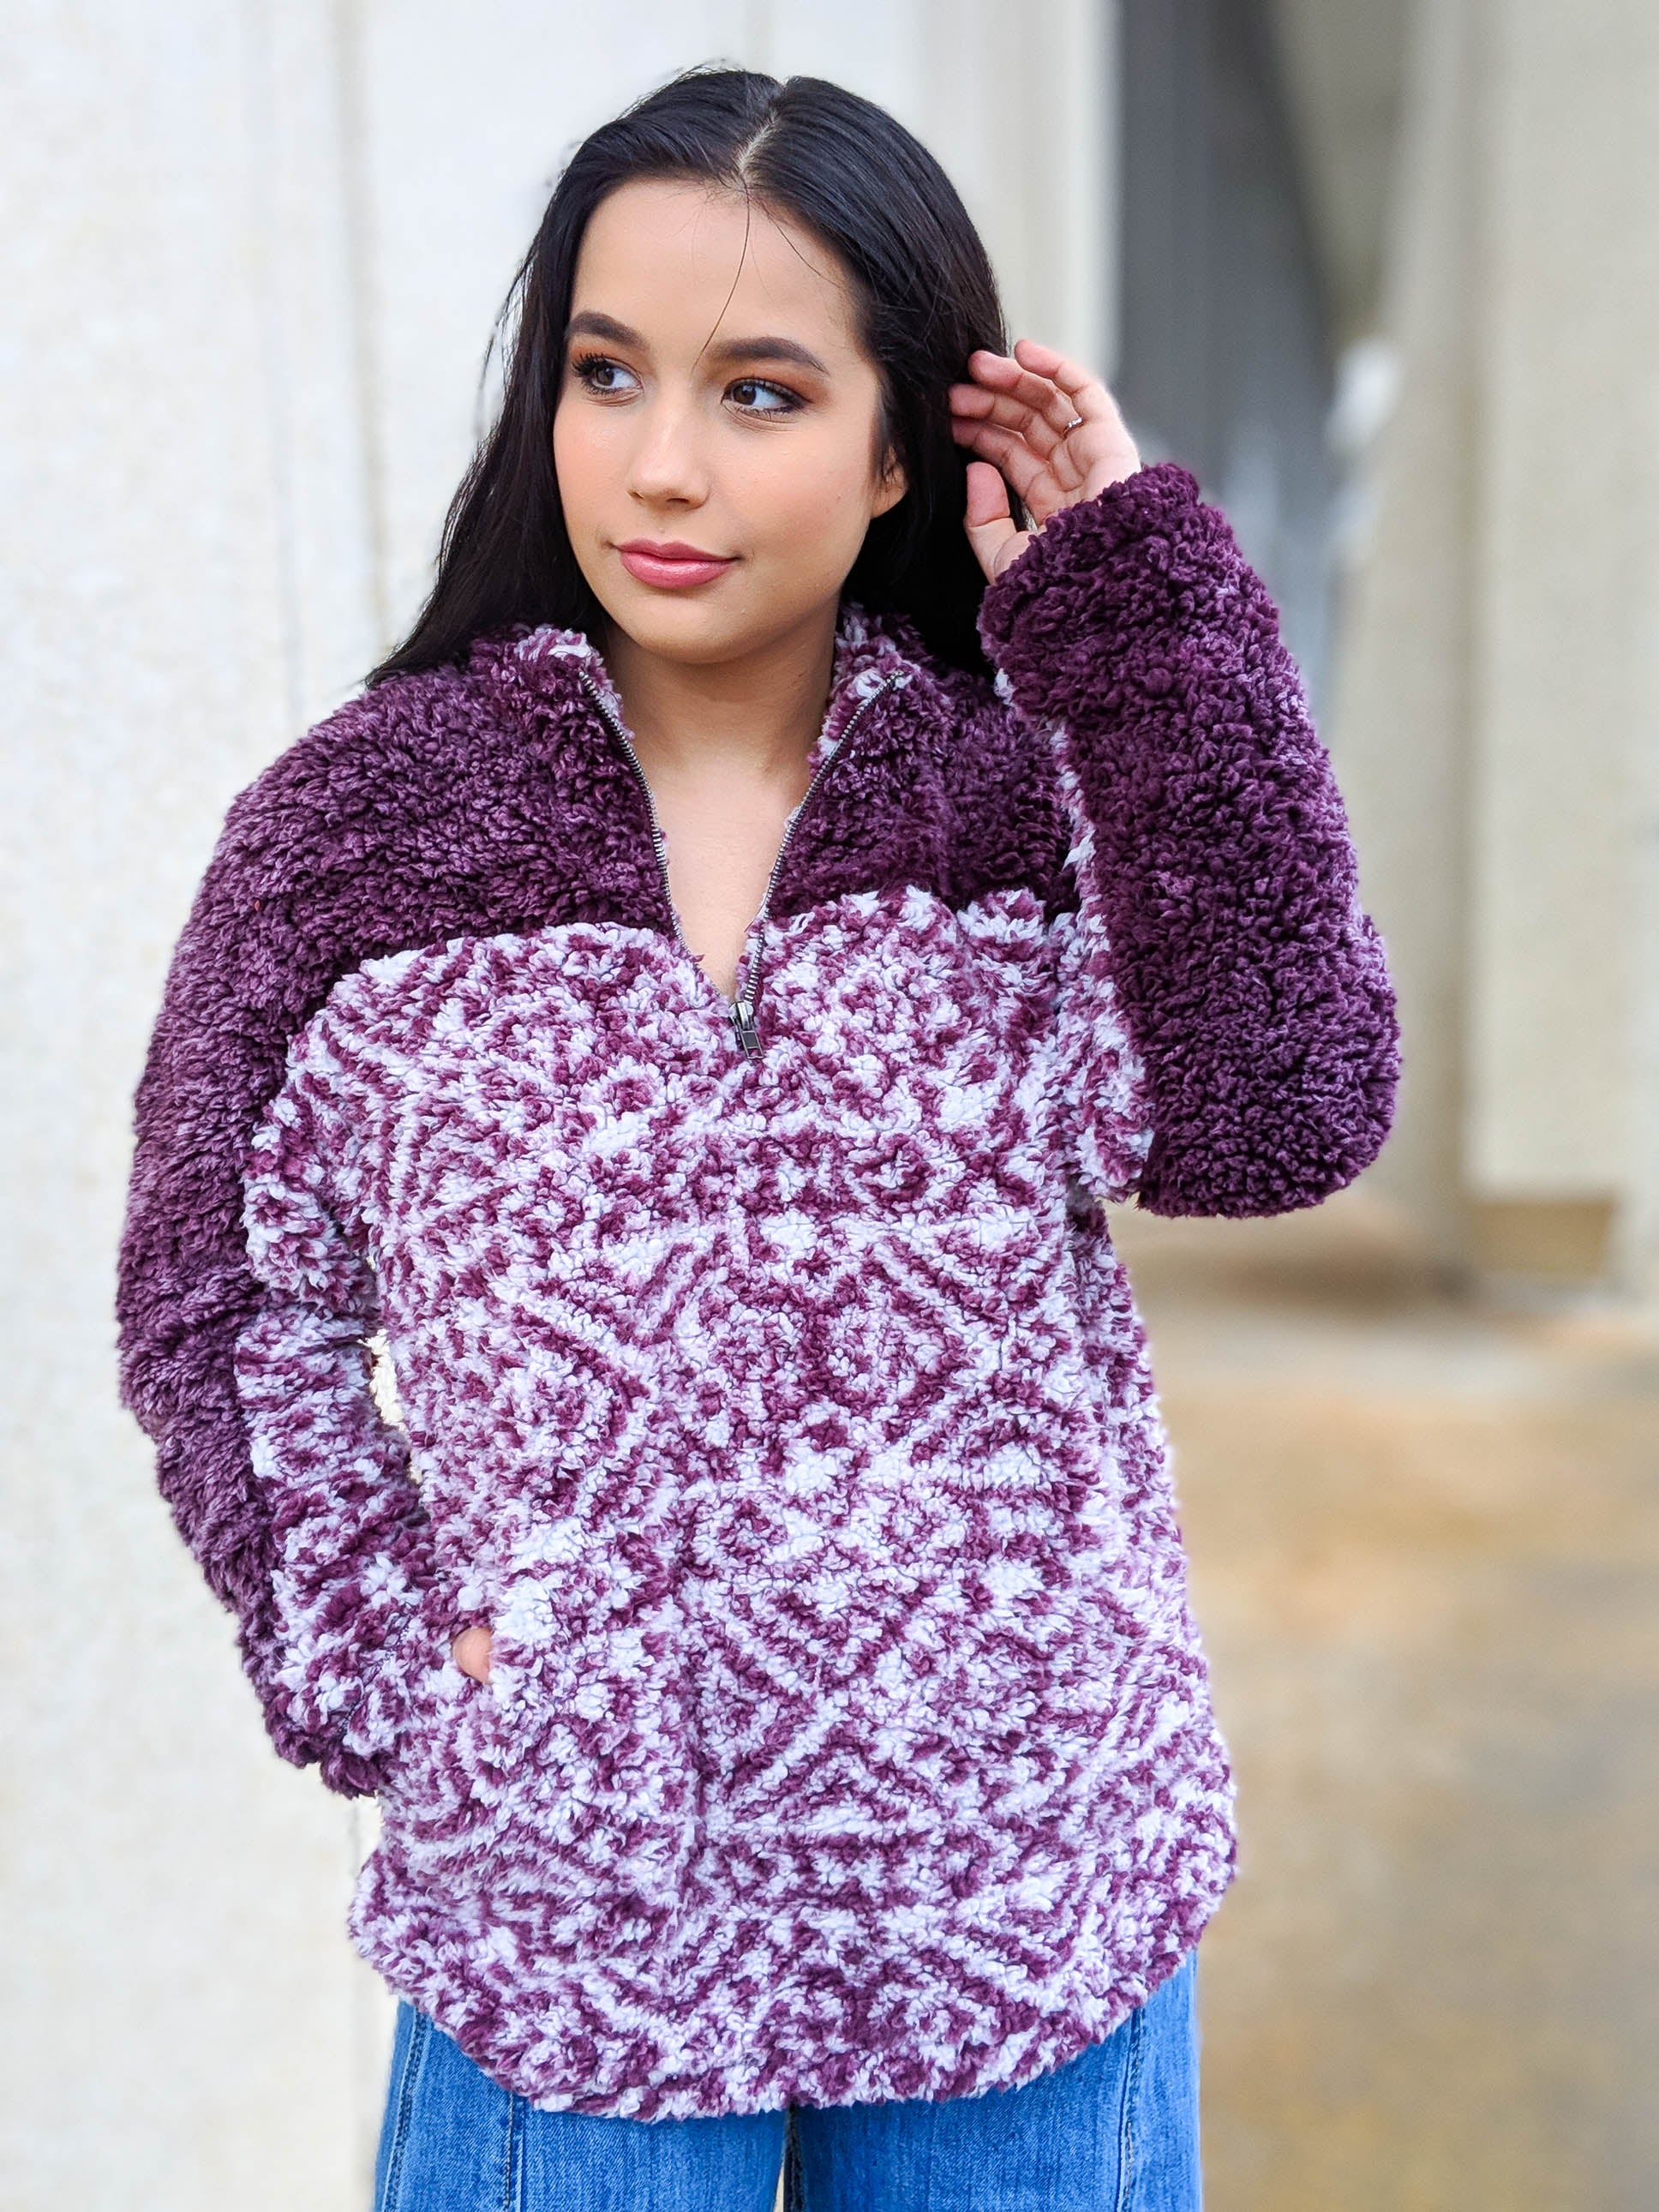 Work And Chill Multi-toned Sherpa Pullover - The Flawless Babe Boutique